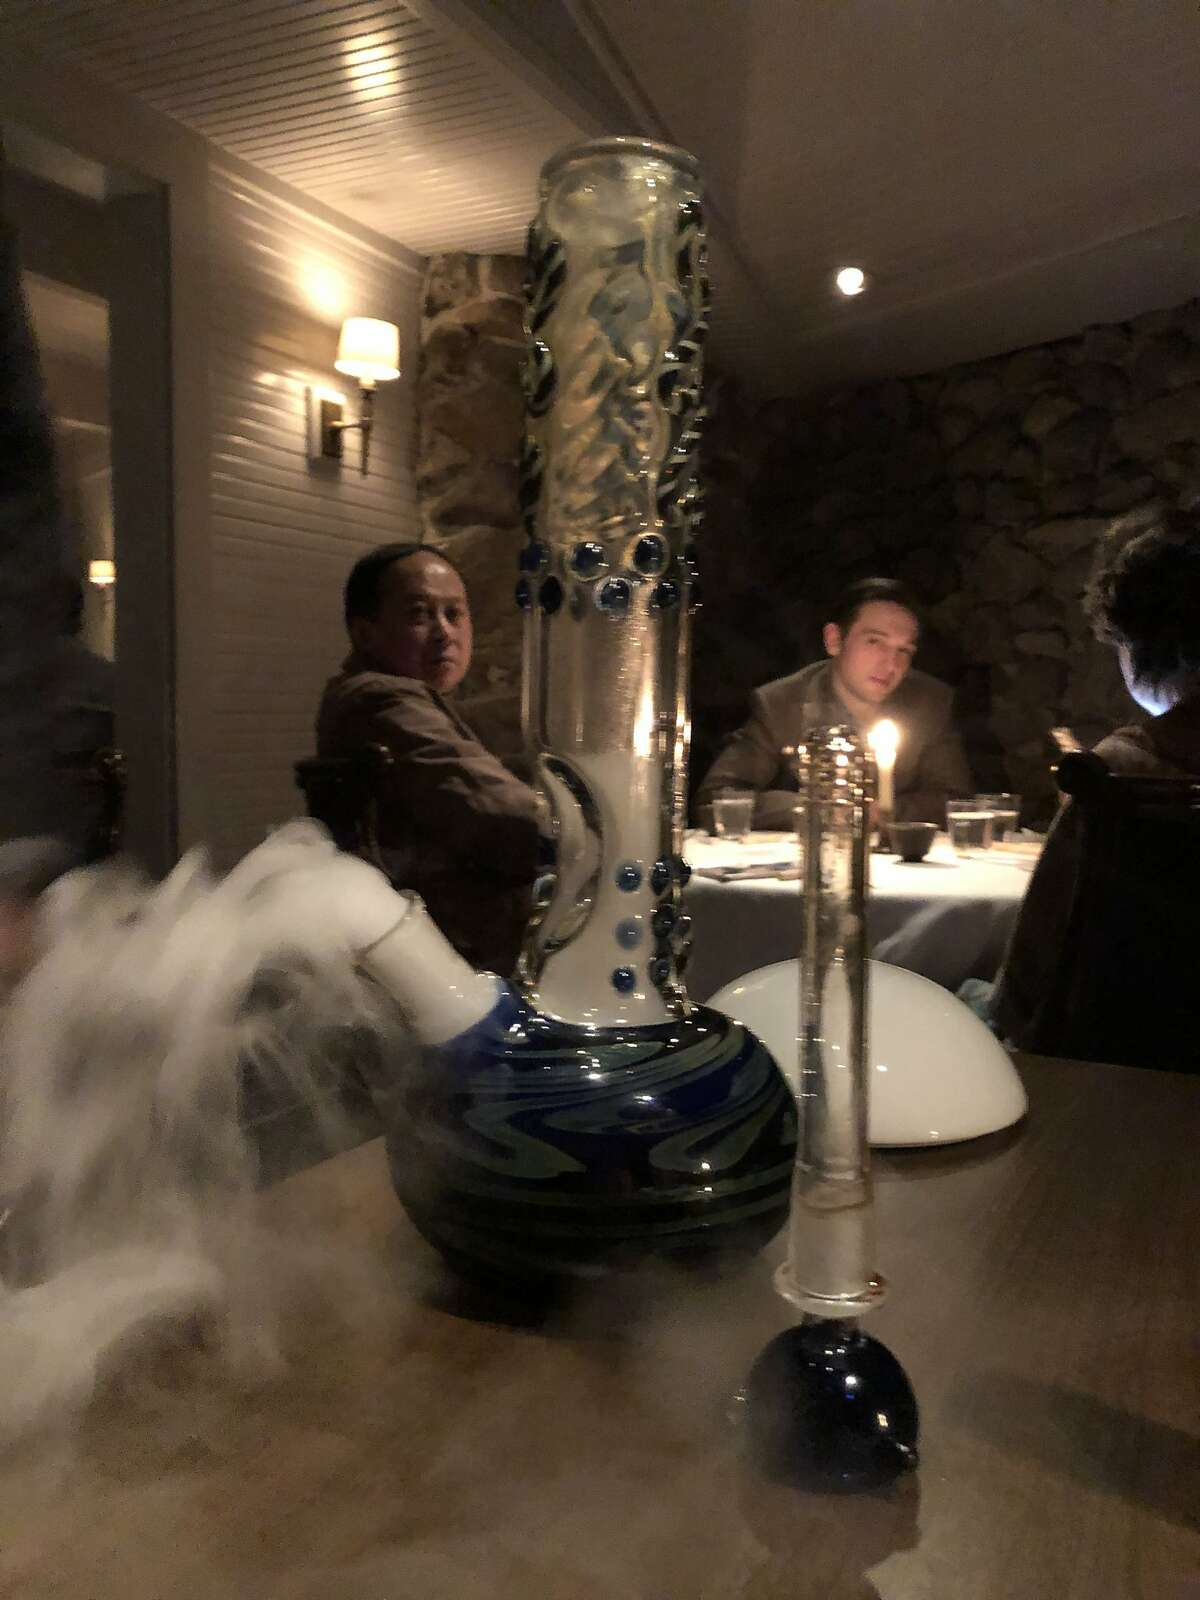 A glass bong full of porcini mushroom broth and smoke at The French Laundry in Yountville, CA.